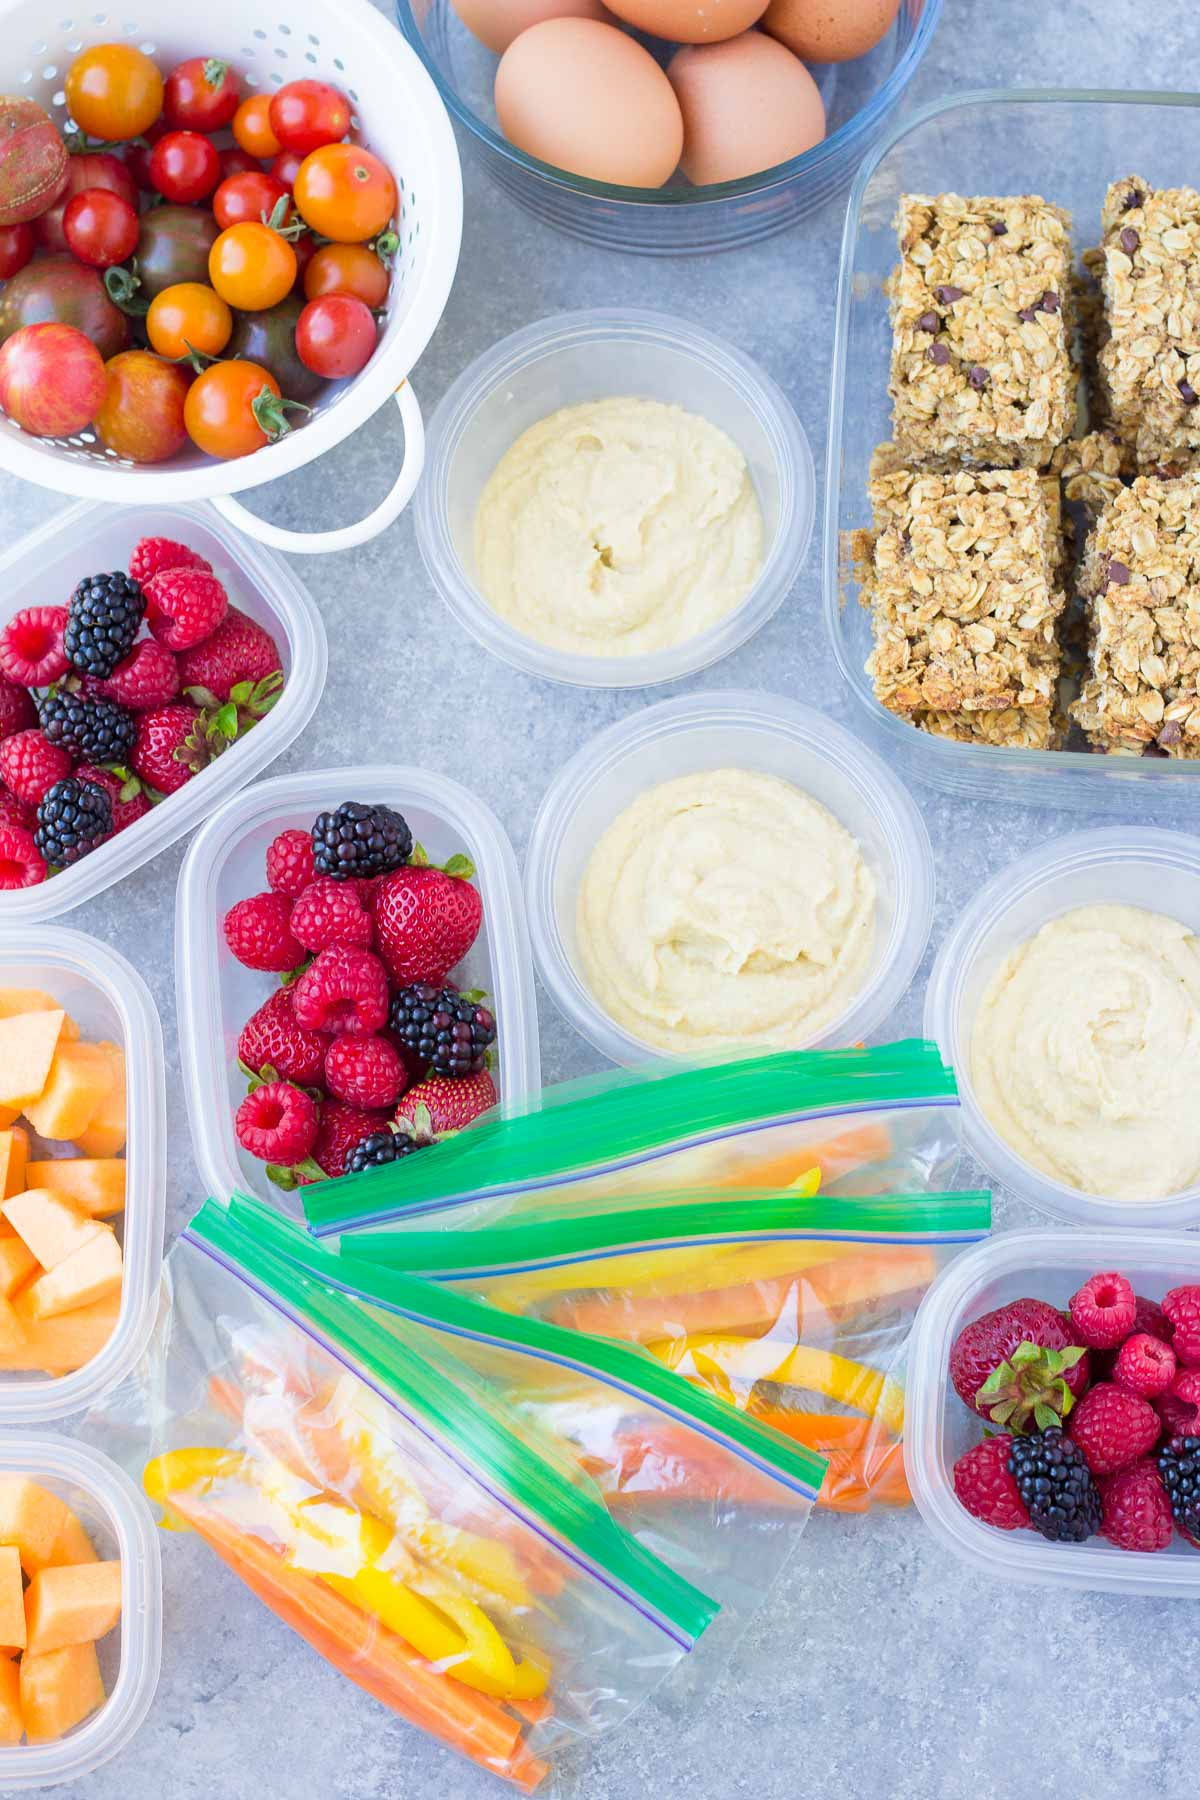 Tips and ideas for creating a snack station in your refrigerator, so that you always have healthy snacks ready to go. Plus, two printables to help make weekly snack prep so easy! Grab and go ideas for the kids for summer and after school. kristineskitchenblog.com